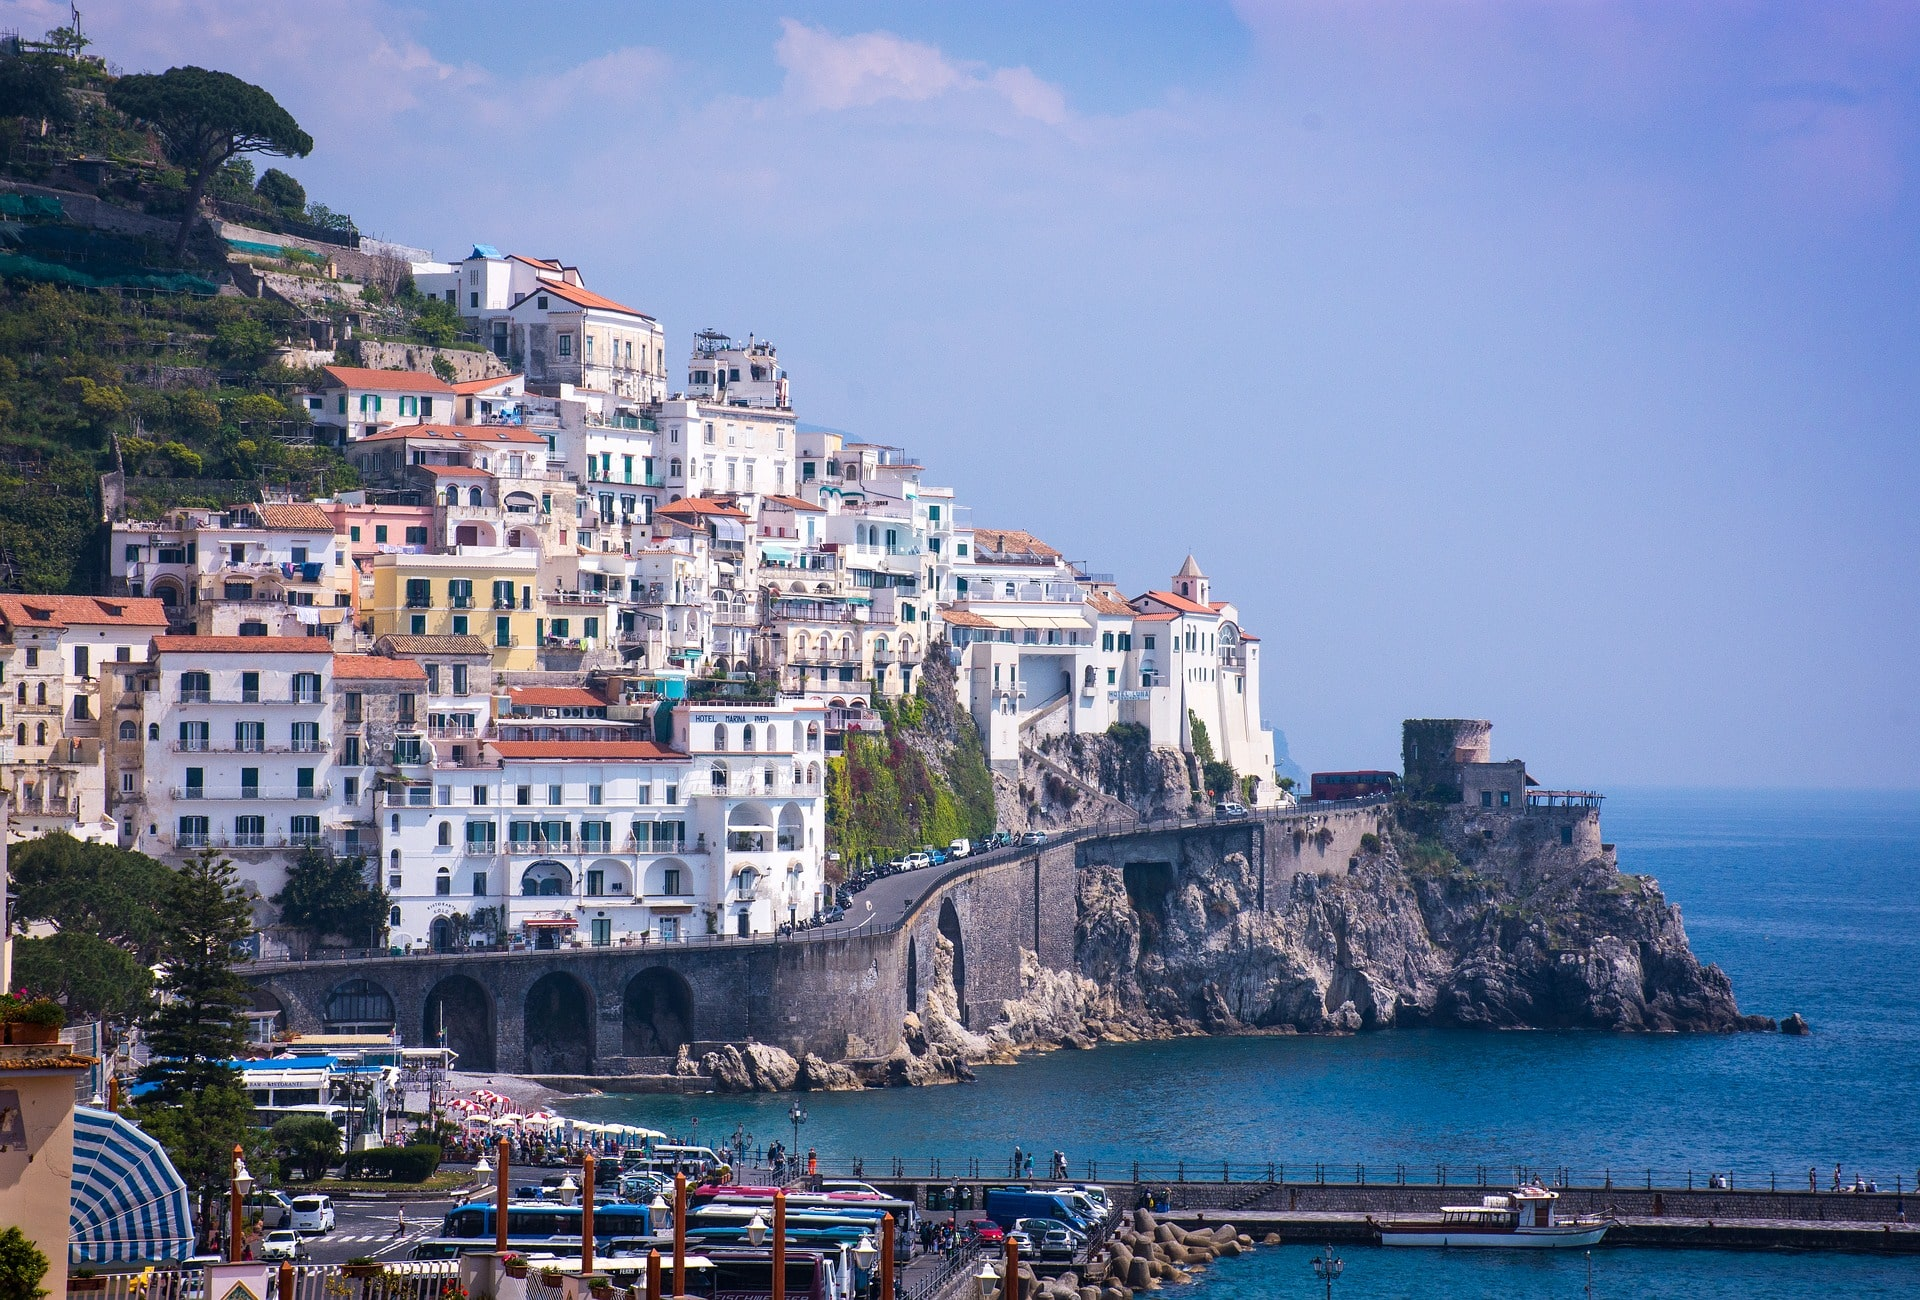 Where to stay in Italy for high class color and luxury? The gorgeous Amalfi Coast